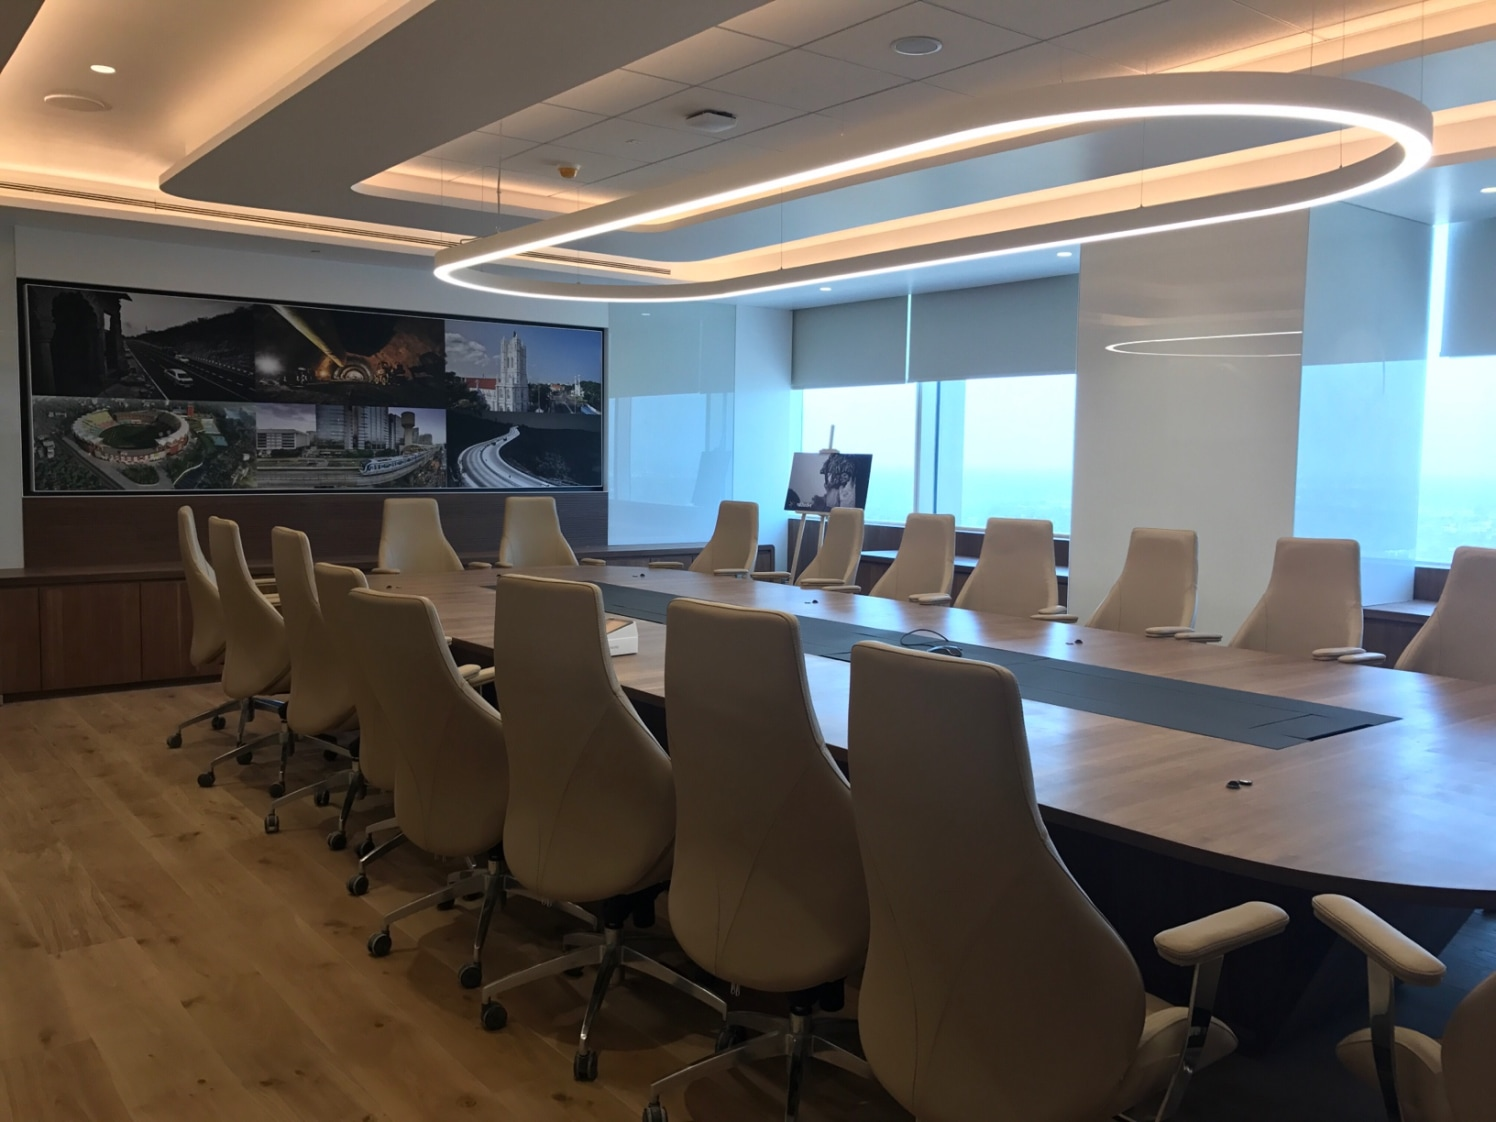 Classic Conference Room With Comfy Chairs by Aanoshka Choksi  Contemporary | Interior Design Photos & Ideas